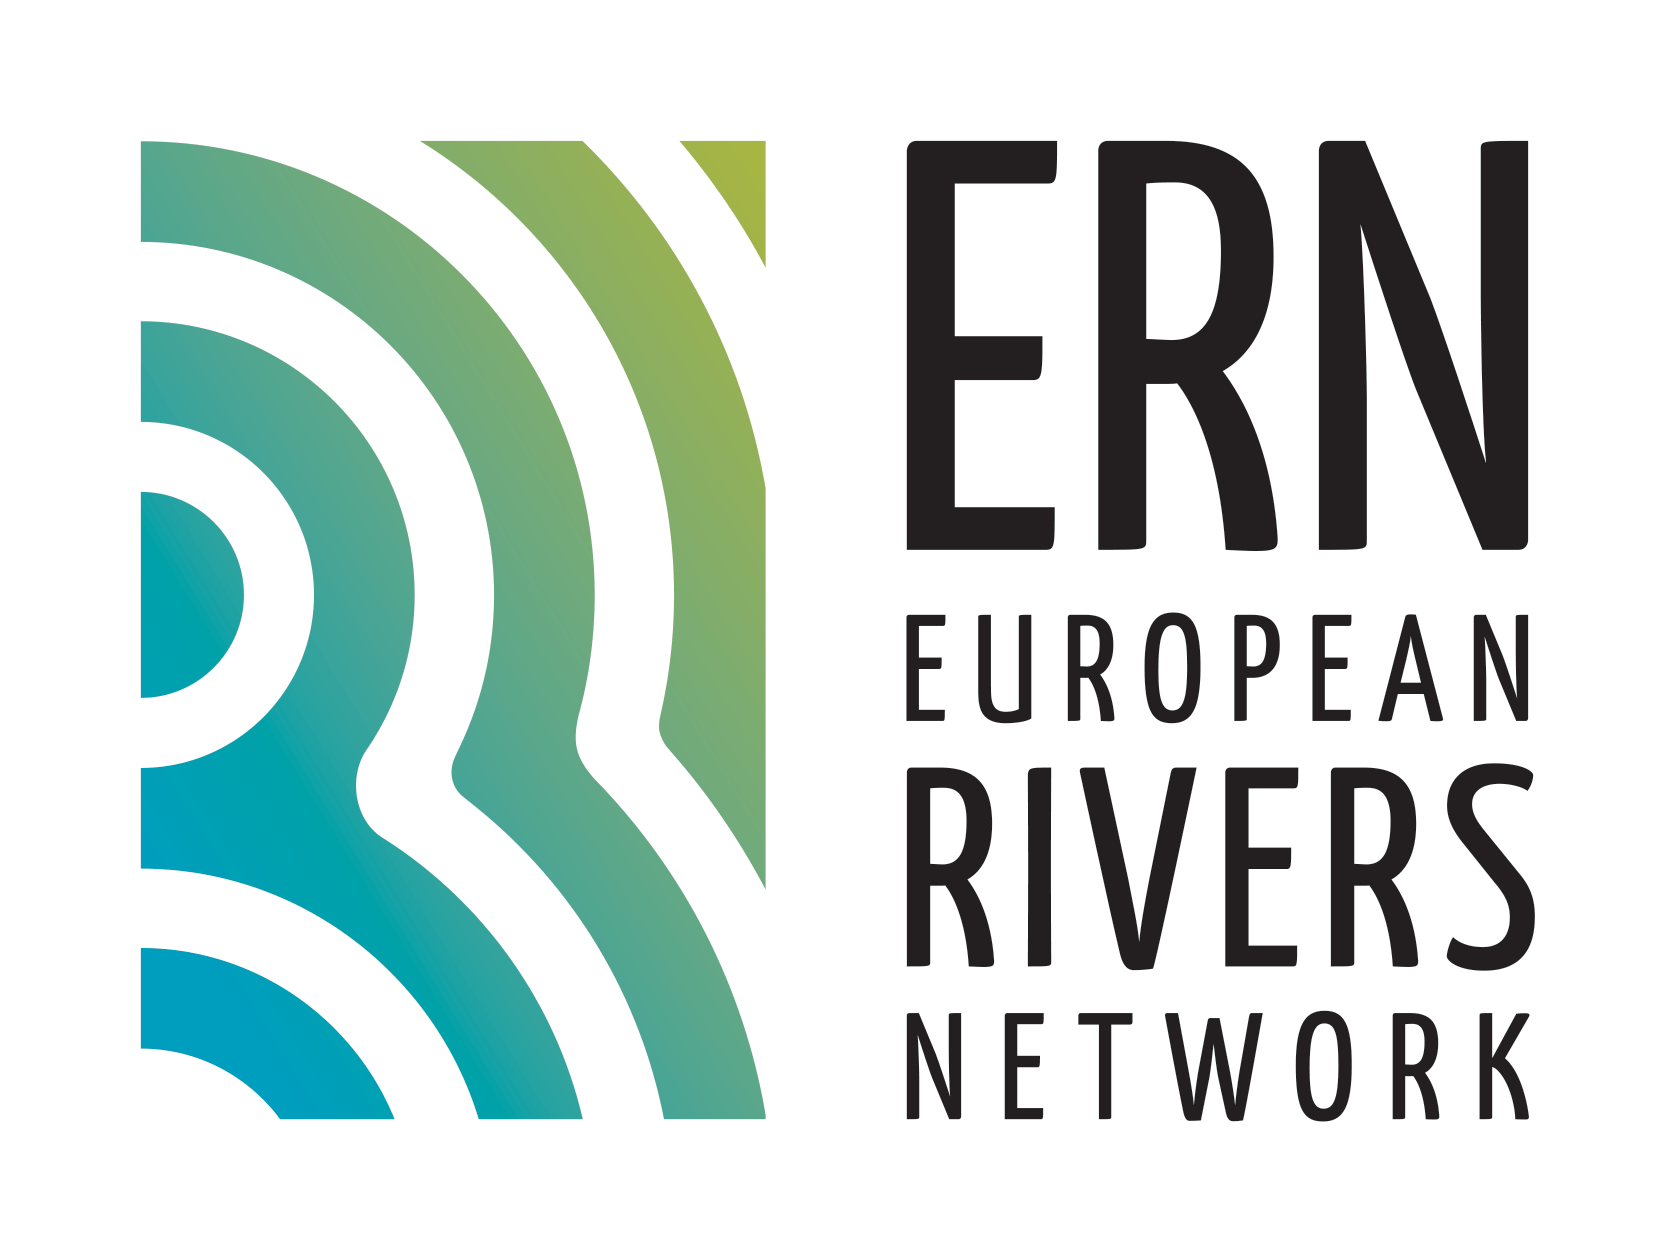 European Rivers Network